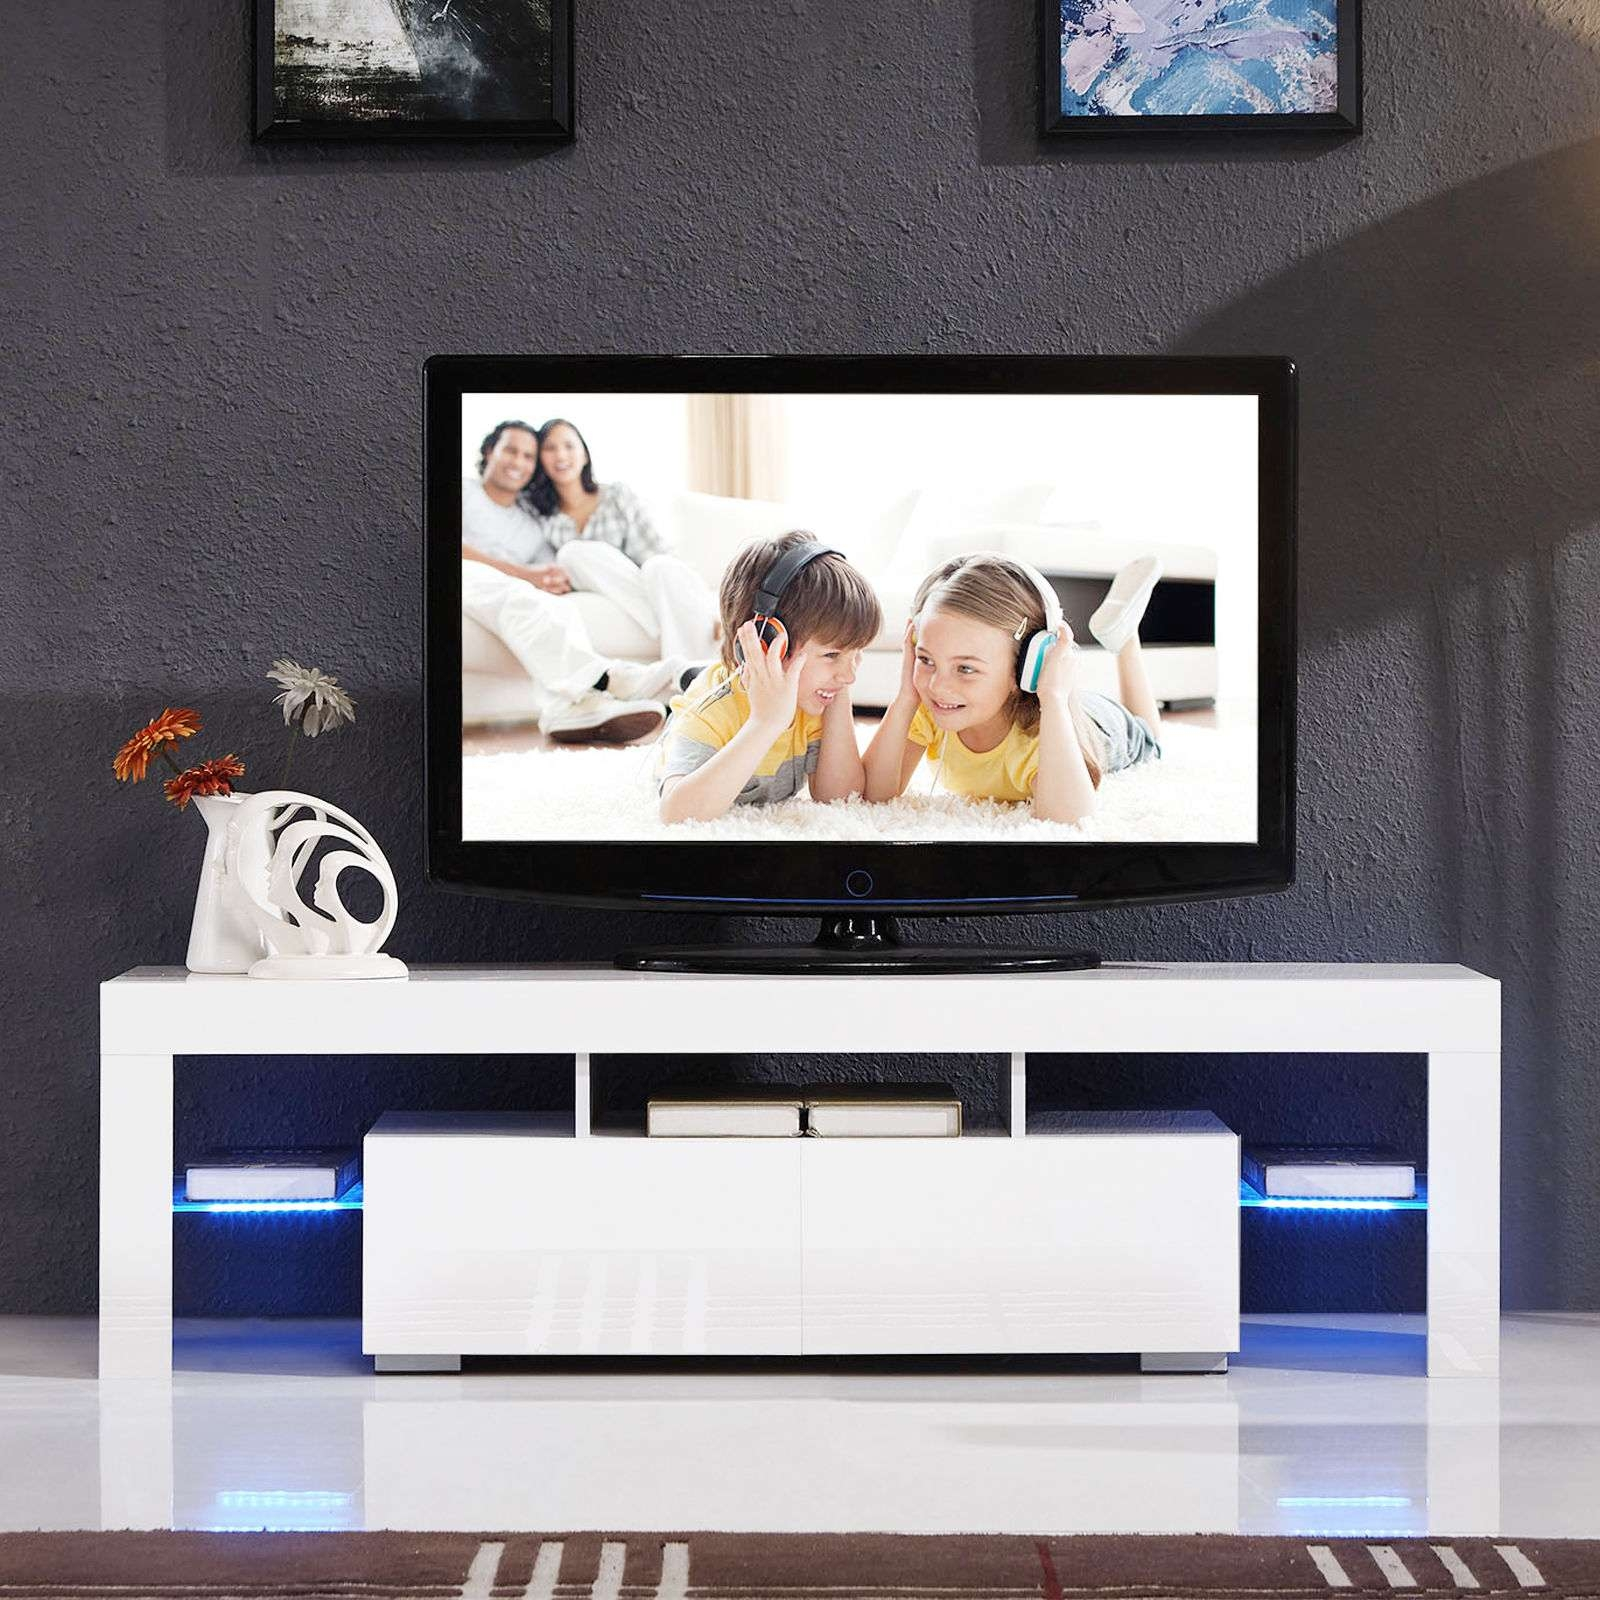 High Gloss White Tv Stand Unit Cabinet W/led Shelves 2 Drawers Throughout Gloss White Tv Cabinets (View 12 of 20)